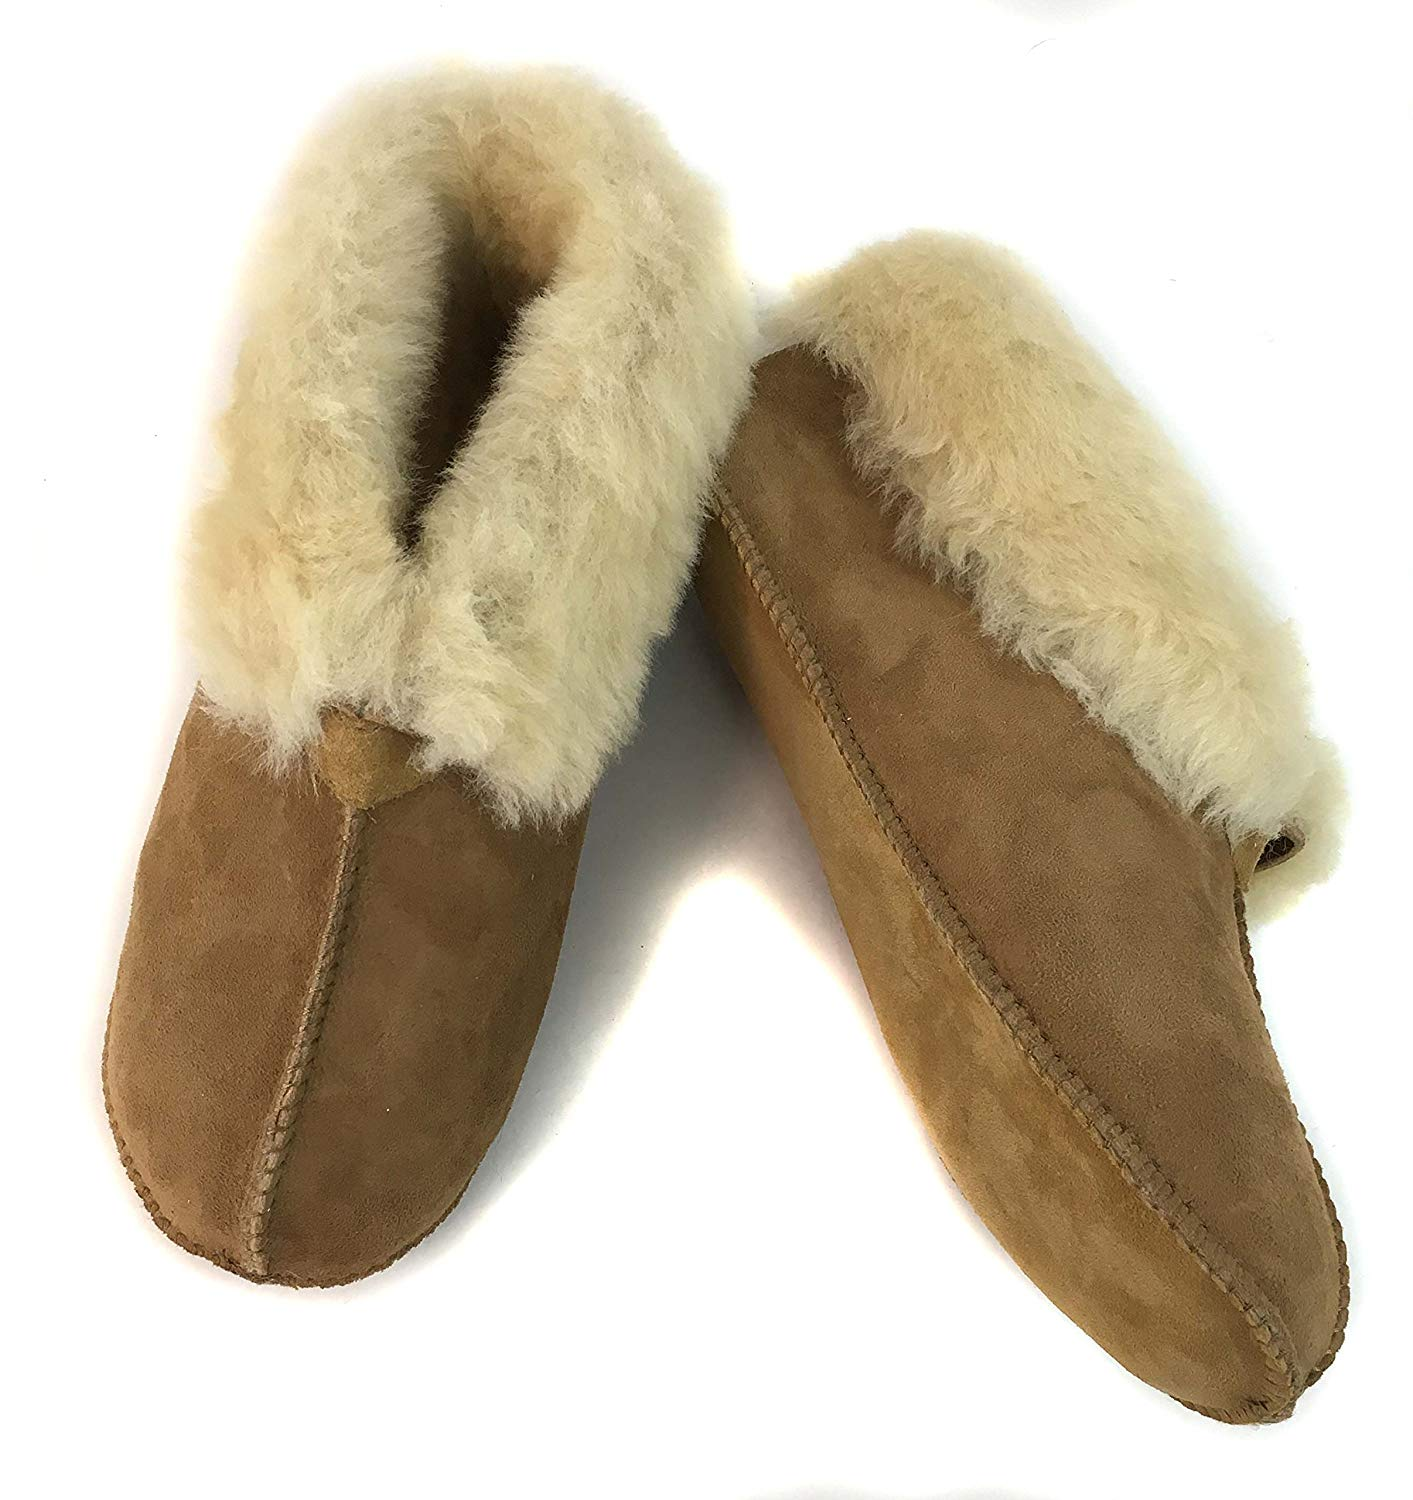 ab79dca72767 Get Quotations · Surell Womens Genuine Shearling Slip On Soft Sole Moccasin  - Sheepskin Comfort Slippers